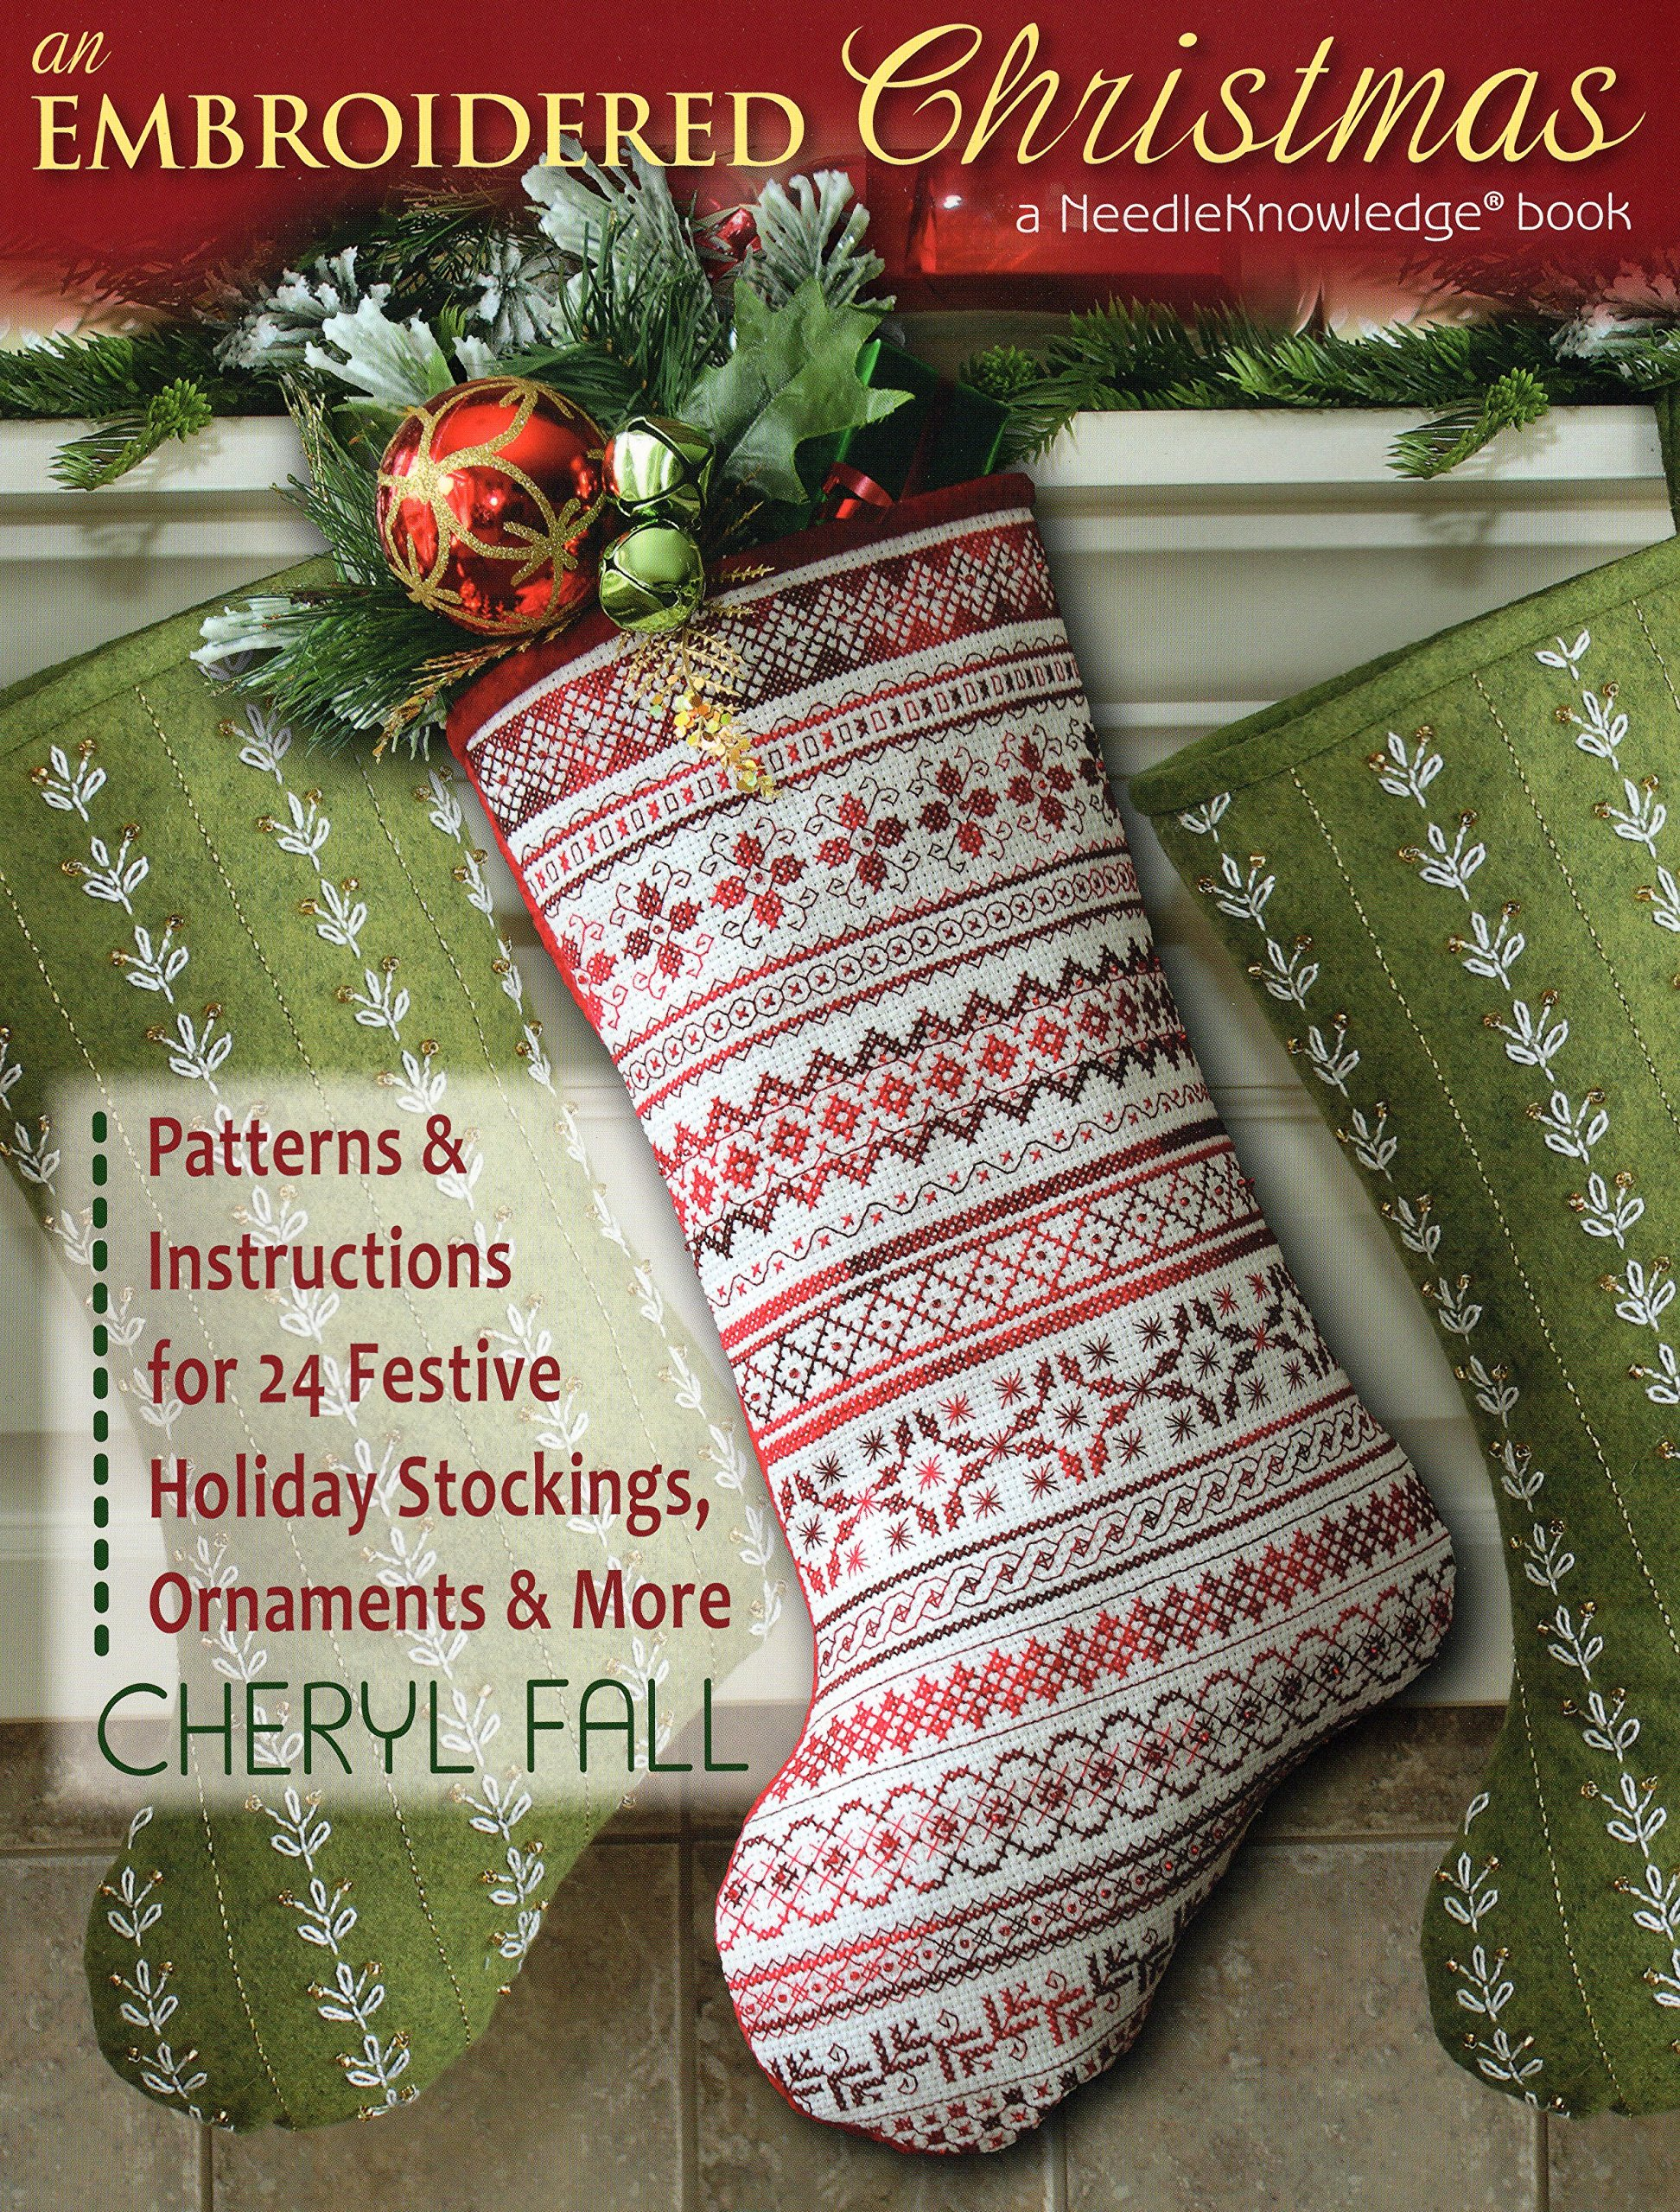 an embroidered christmas patterns instructions for 24 festive holiday stockings ornaments more cheryl fall 0011557014365 amazoncom books